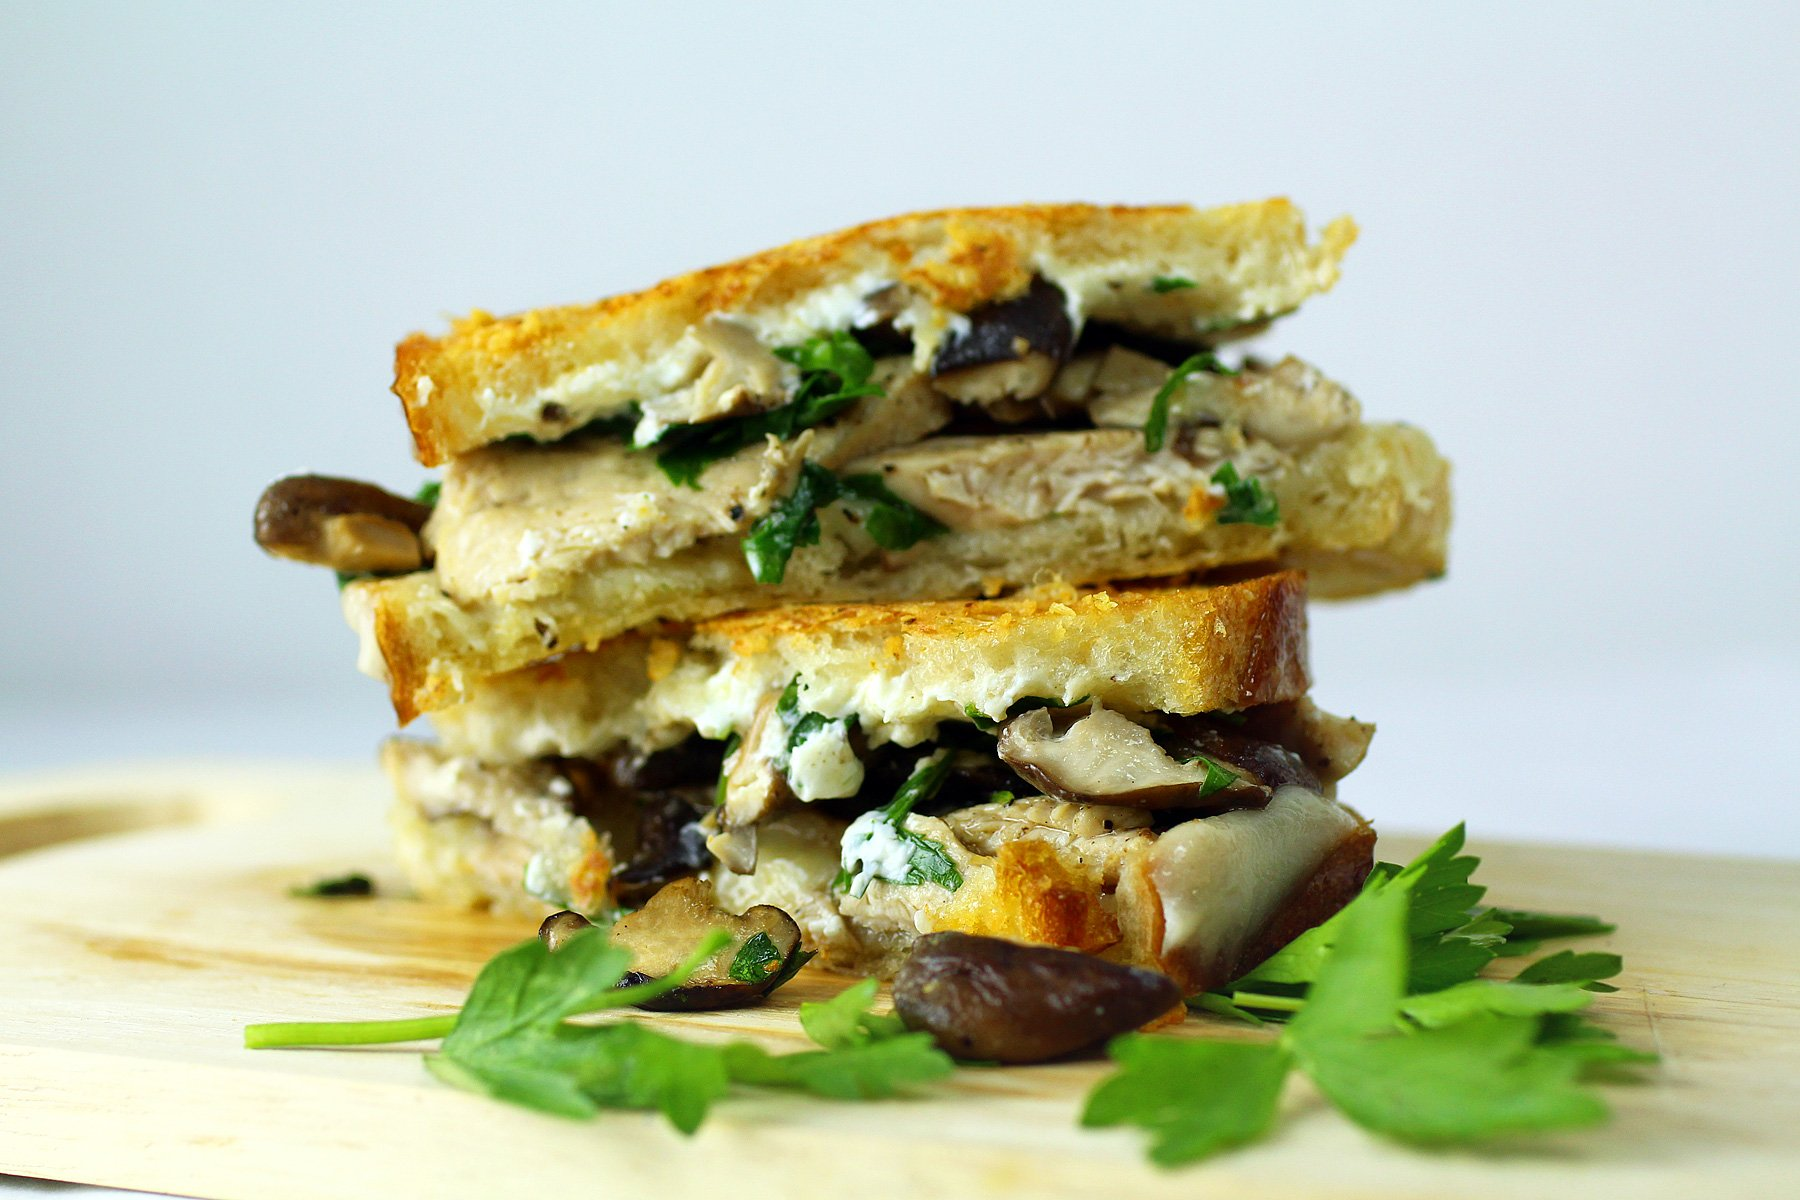 The Turkey Tetrazzini Grilled Cheese Sandwich